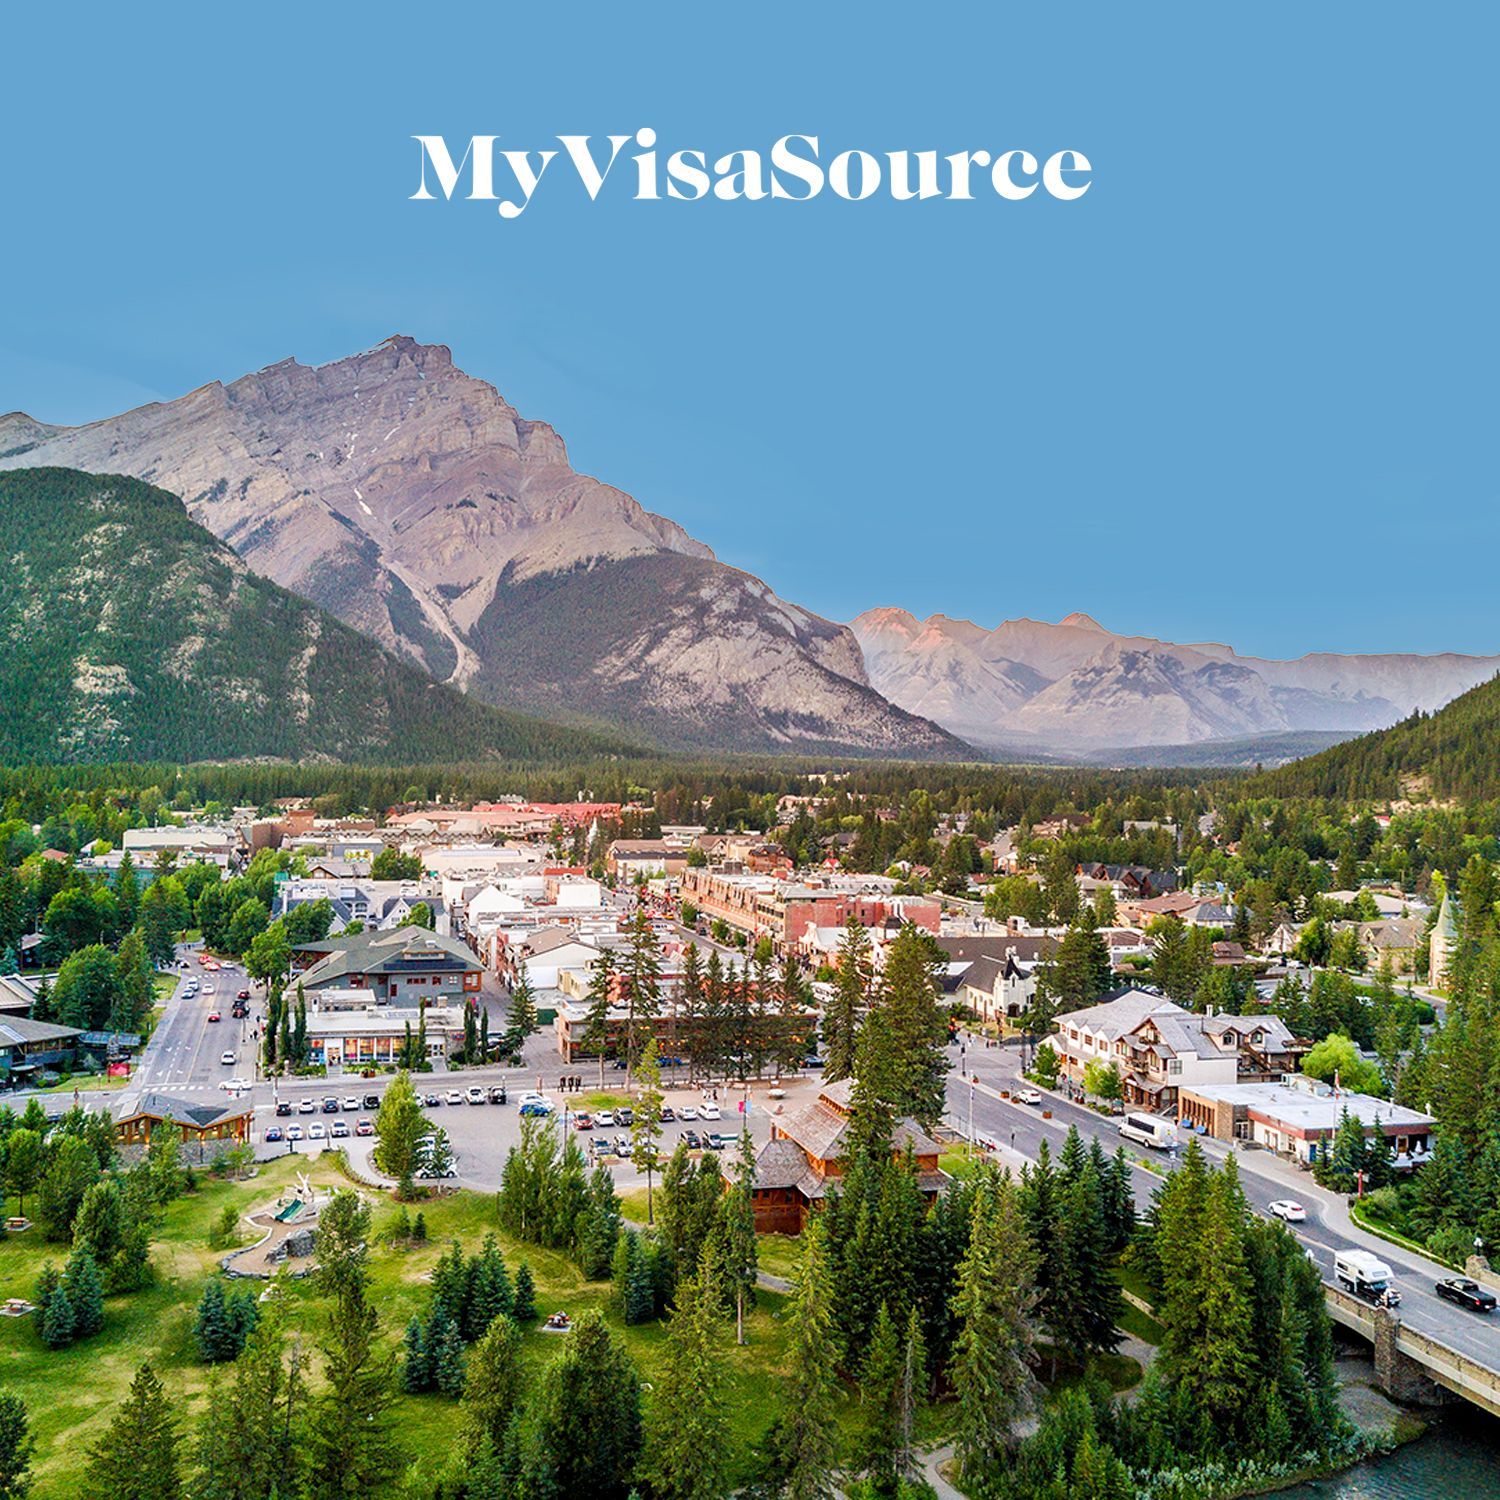 view of rural town and surroundings in canada my visa source